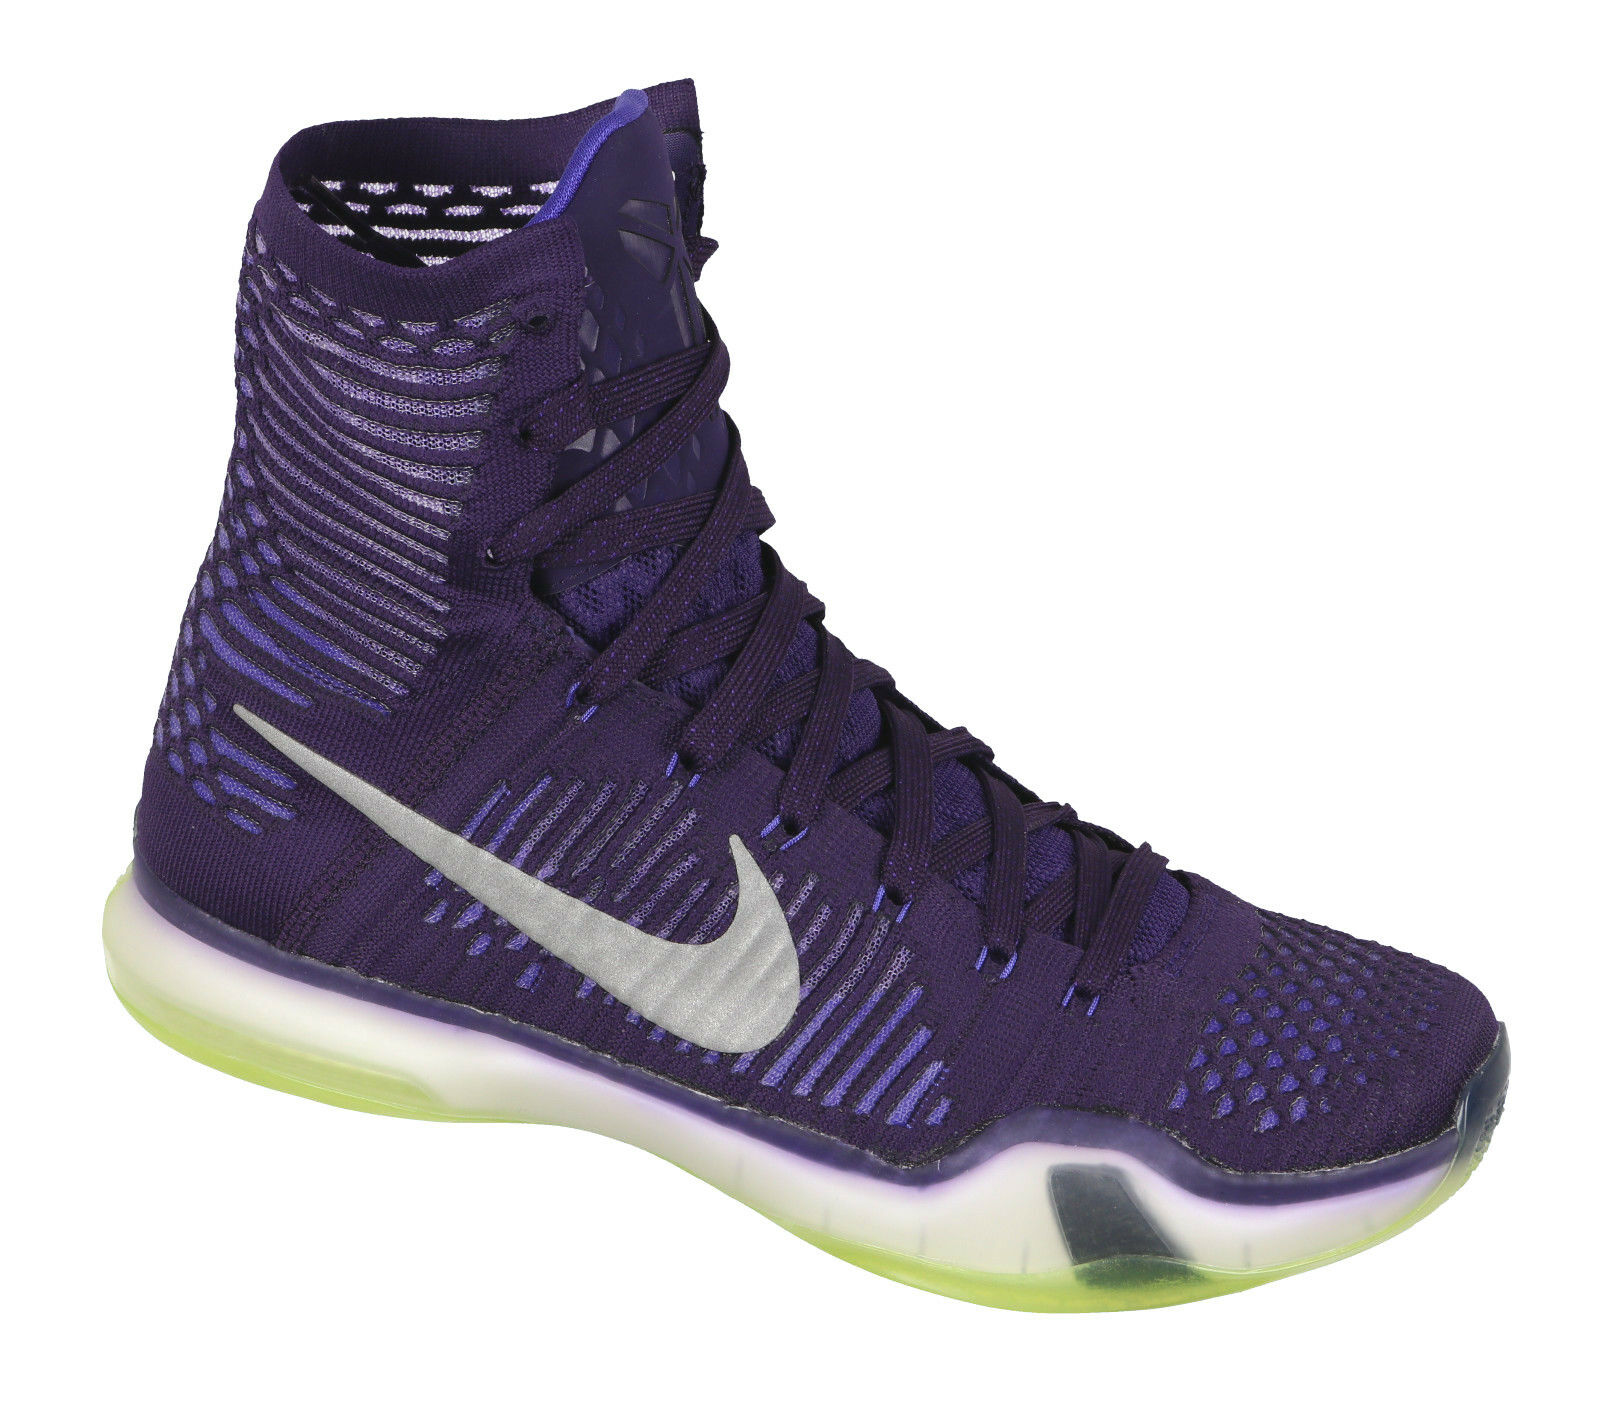 zu billig Kobe Nike X Elite Basketballschuhe Sz Grand Lila